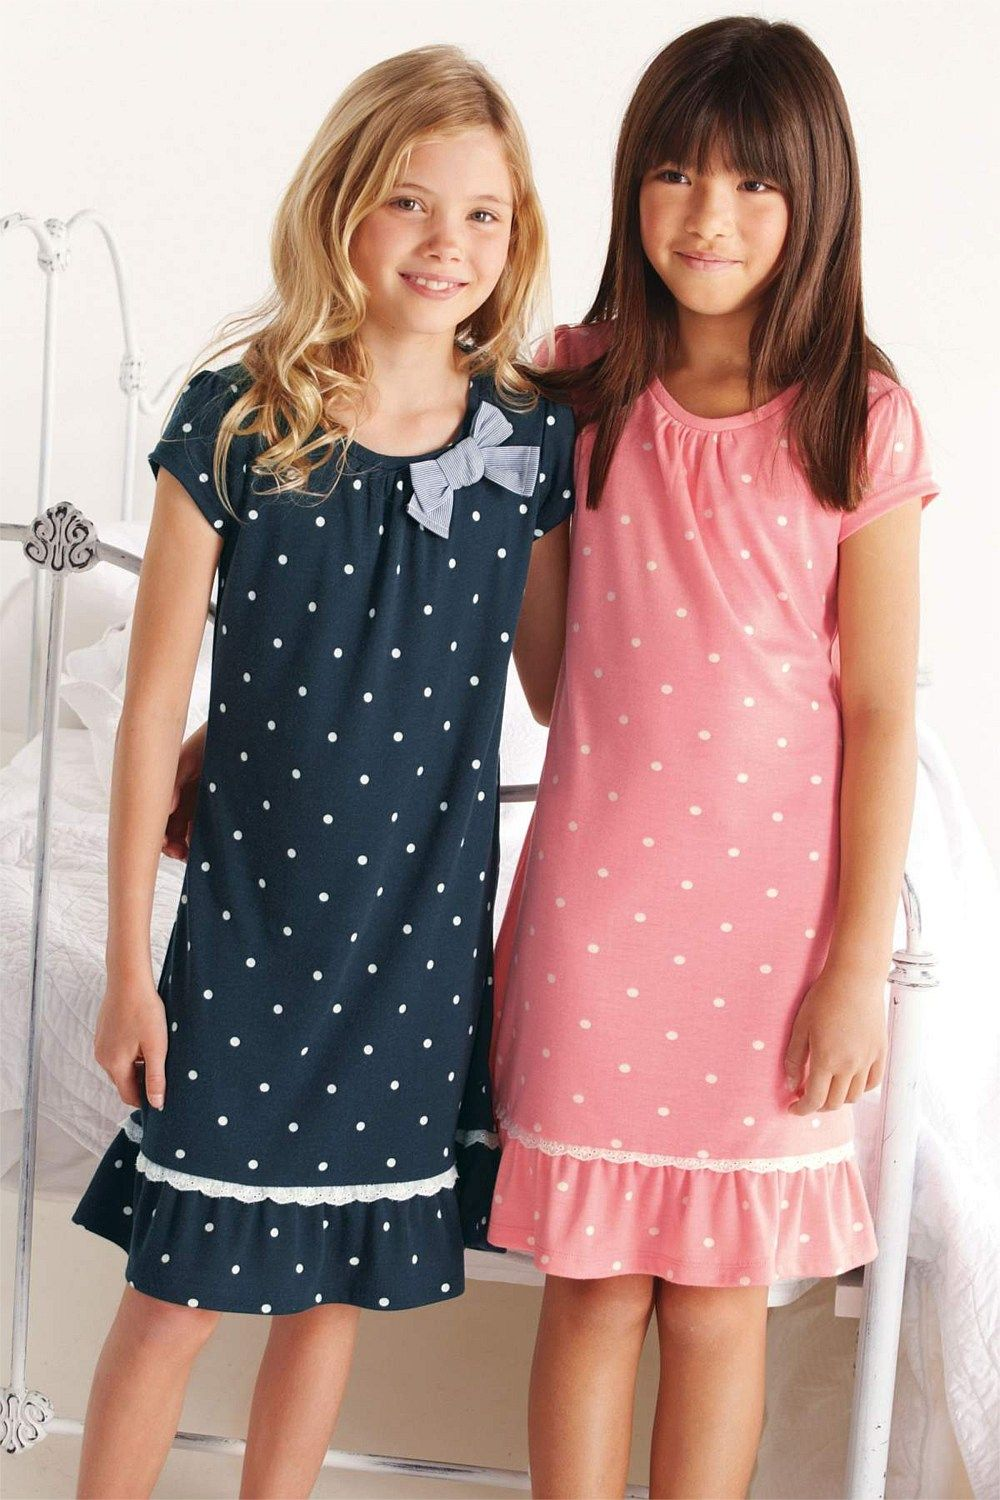 Next Girl\'s Clothing - #girlfashions #stylefun | Girls Sleepwear ...